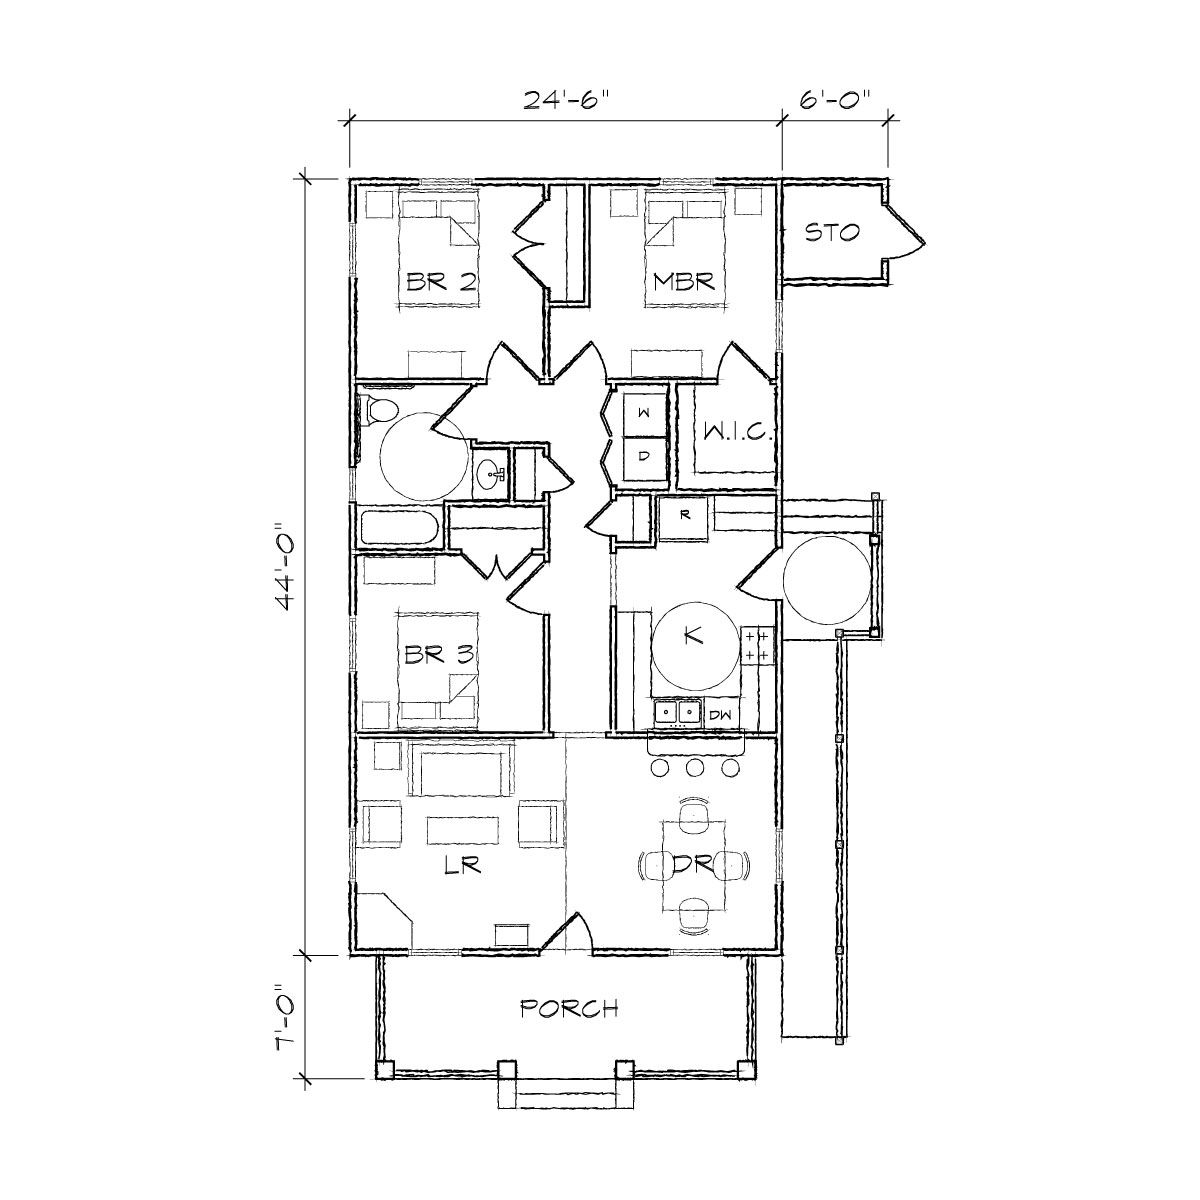 wheelchair accessible house plans - ค้นหาด้วย Google | Home ...